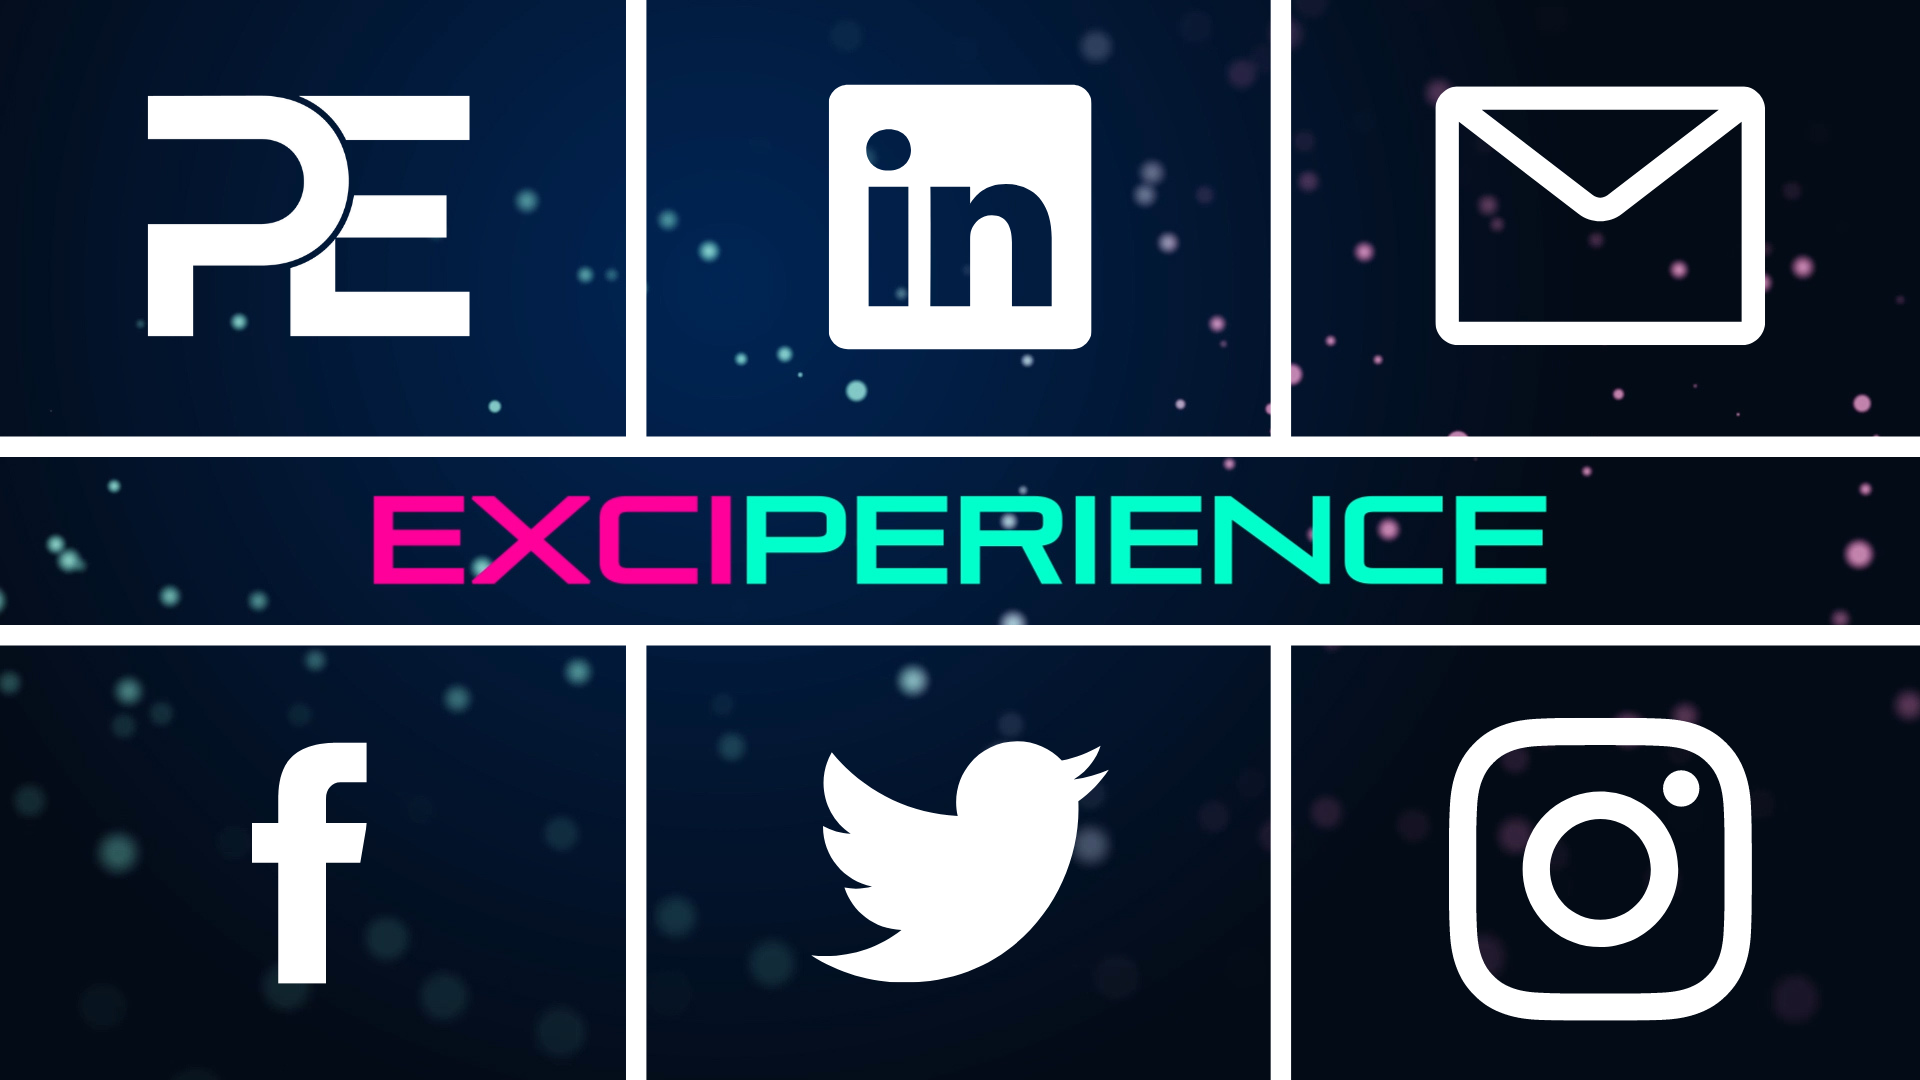 ExciPerience Social Channels